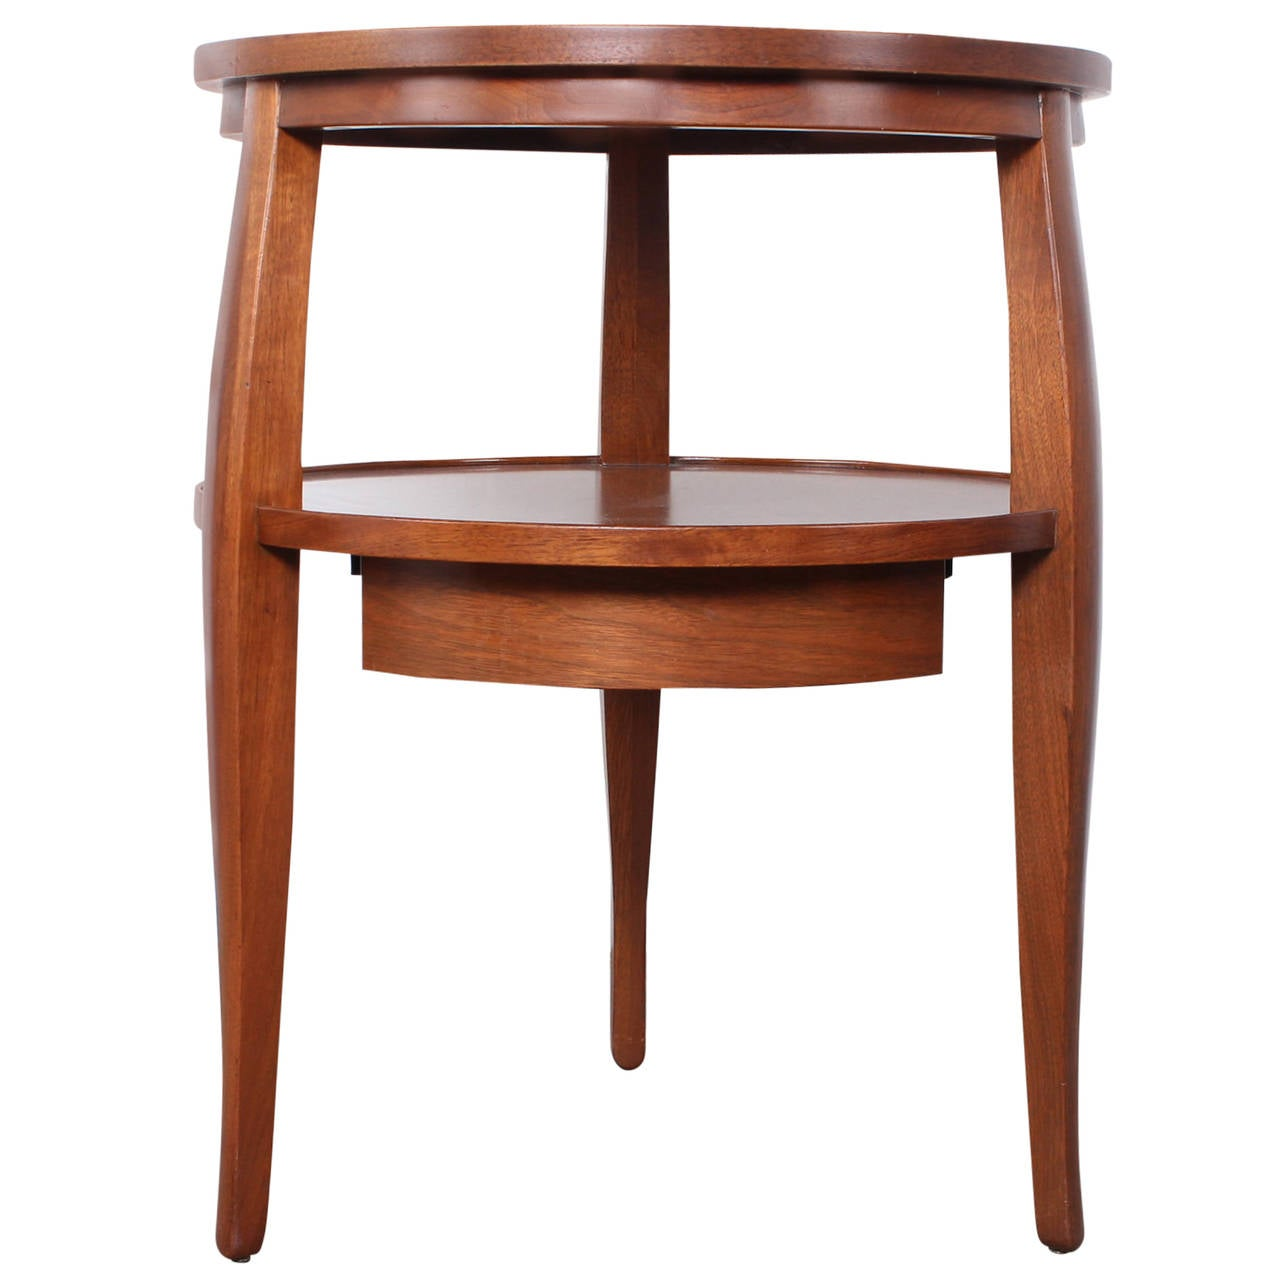 Two tier side table by edward wormley for dunbar for sale at 1stdibs - Archives departementales 33 tables decennales ...